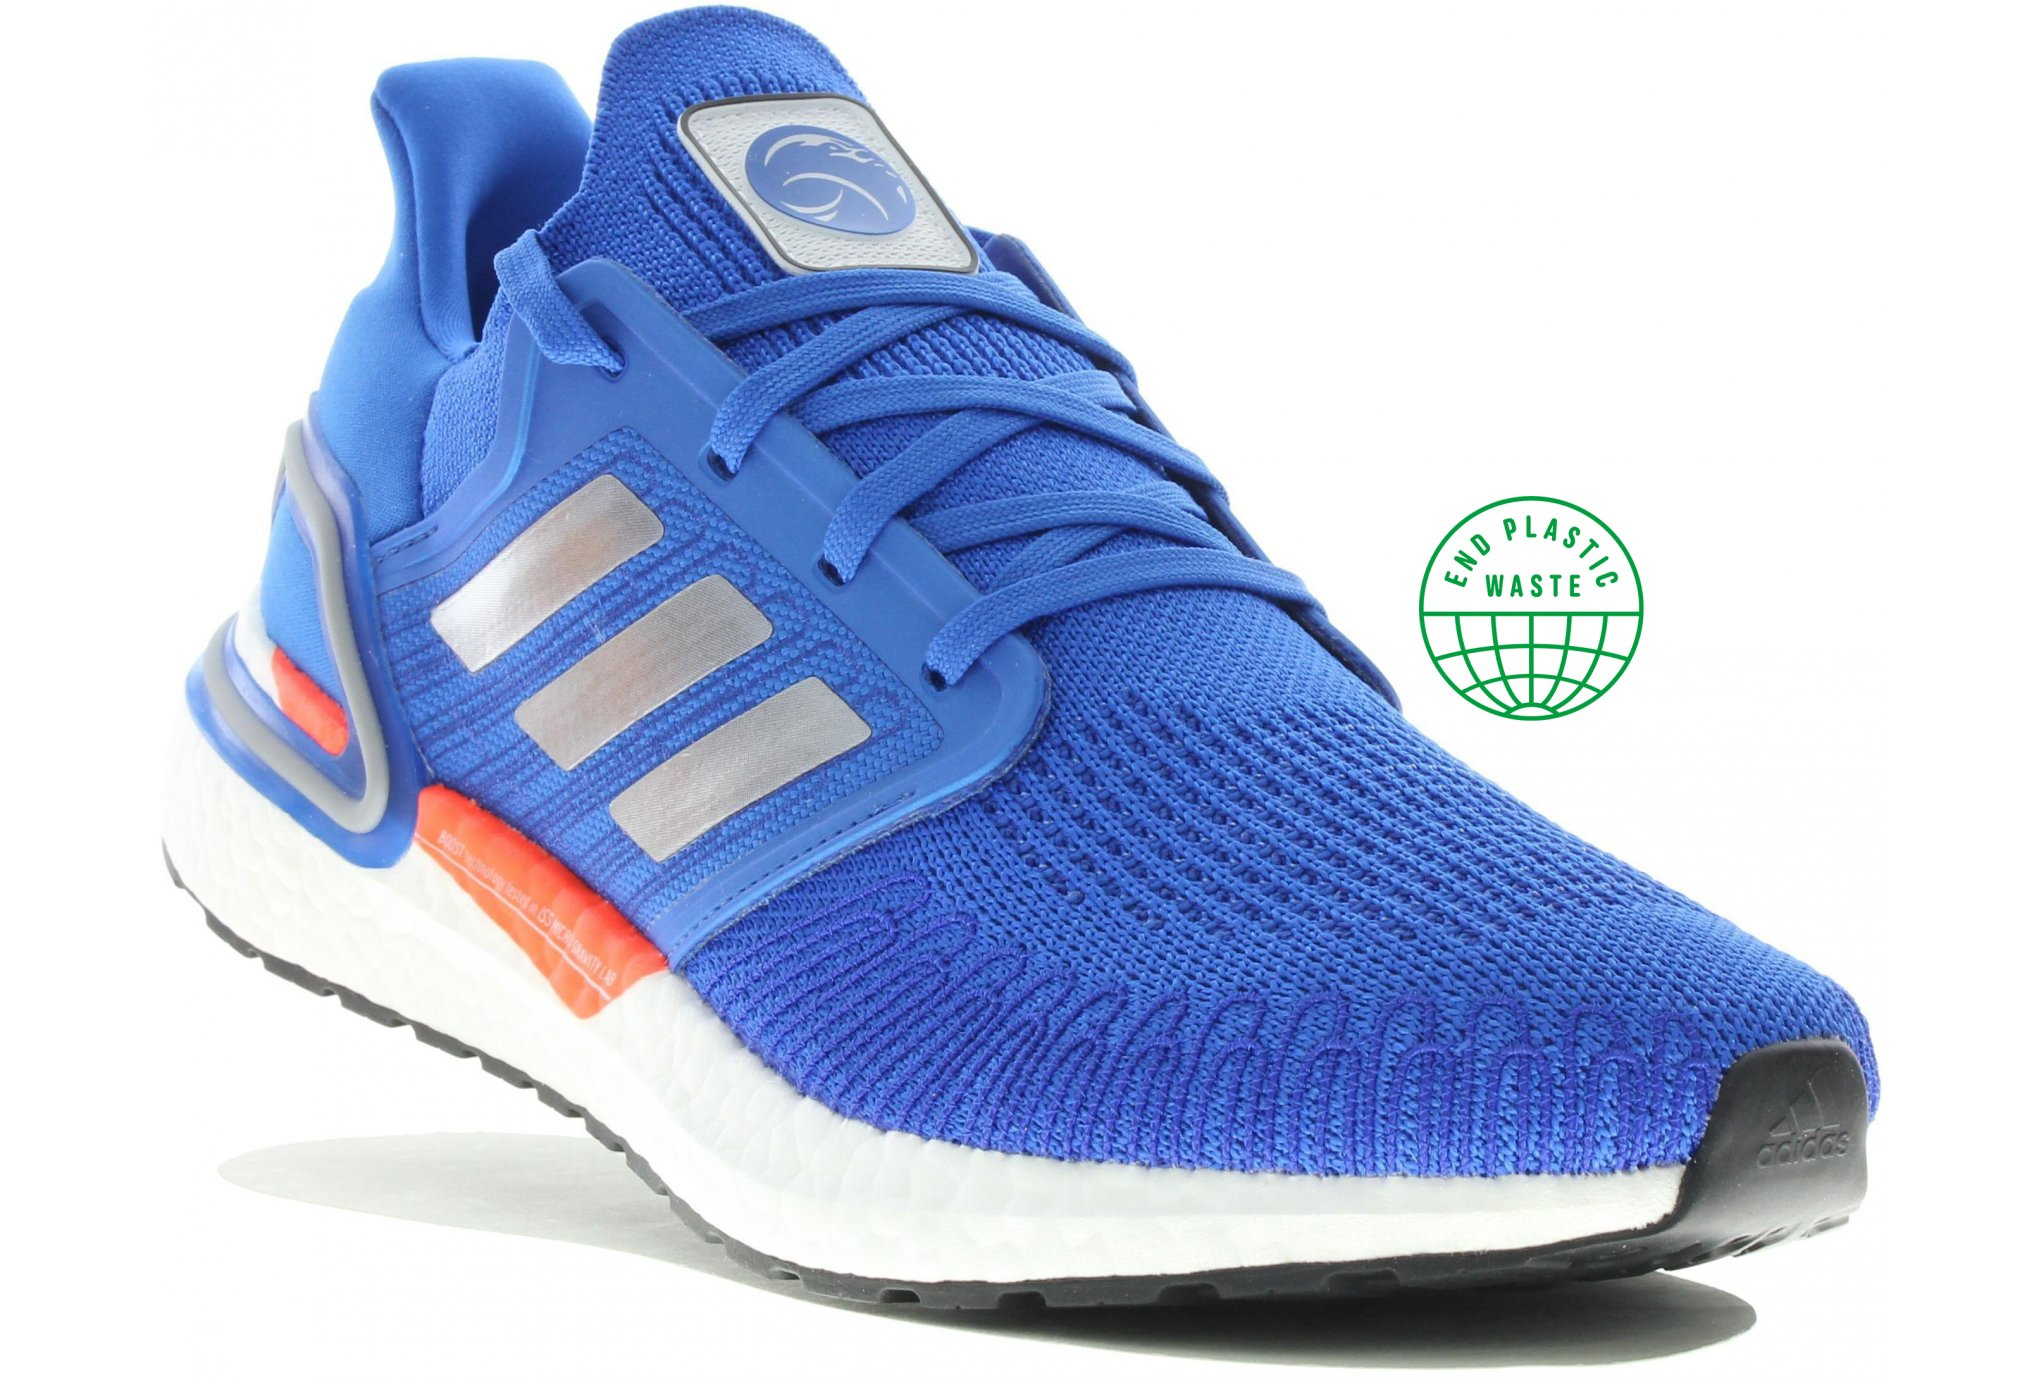 adidas UltraBOOST 20 Space Race Primeblue M Chaussures homme